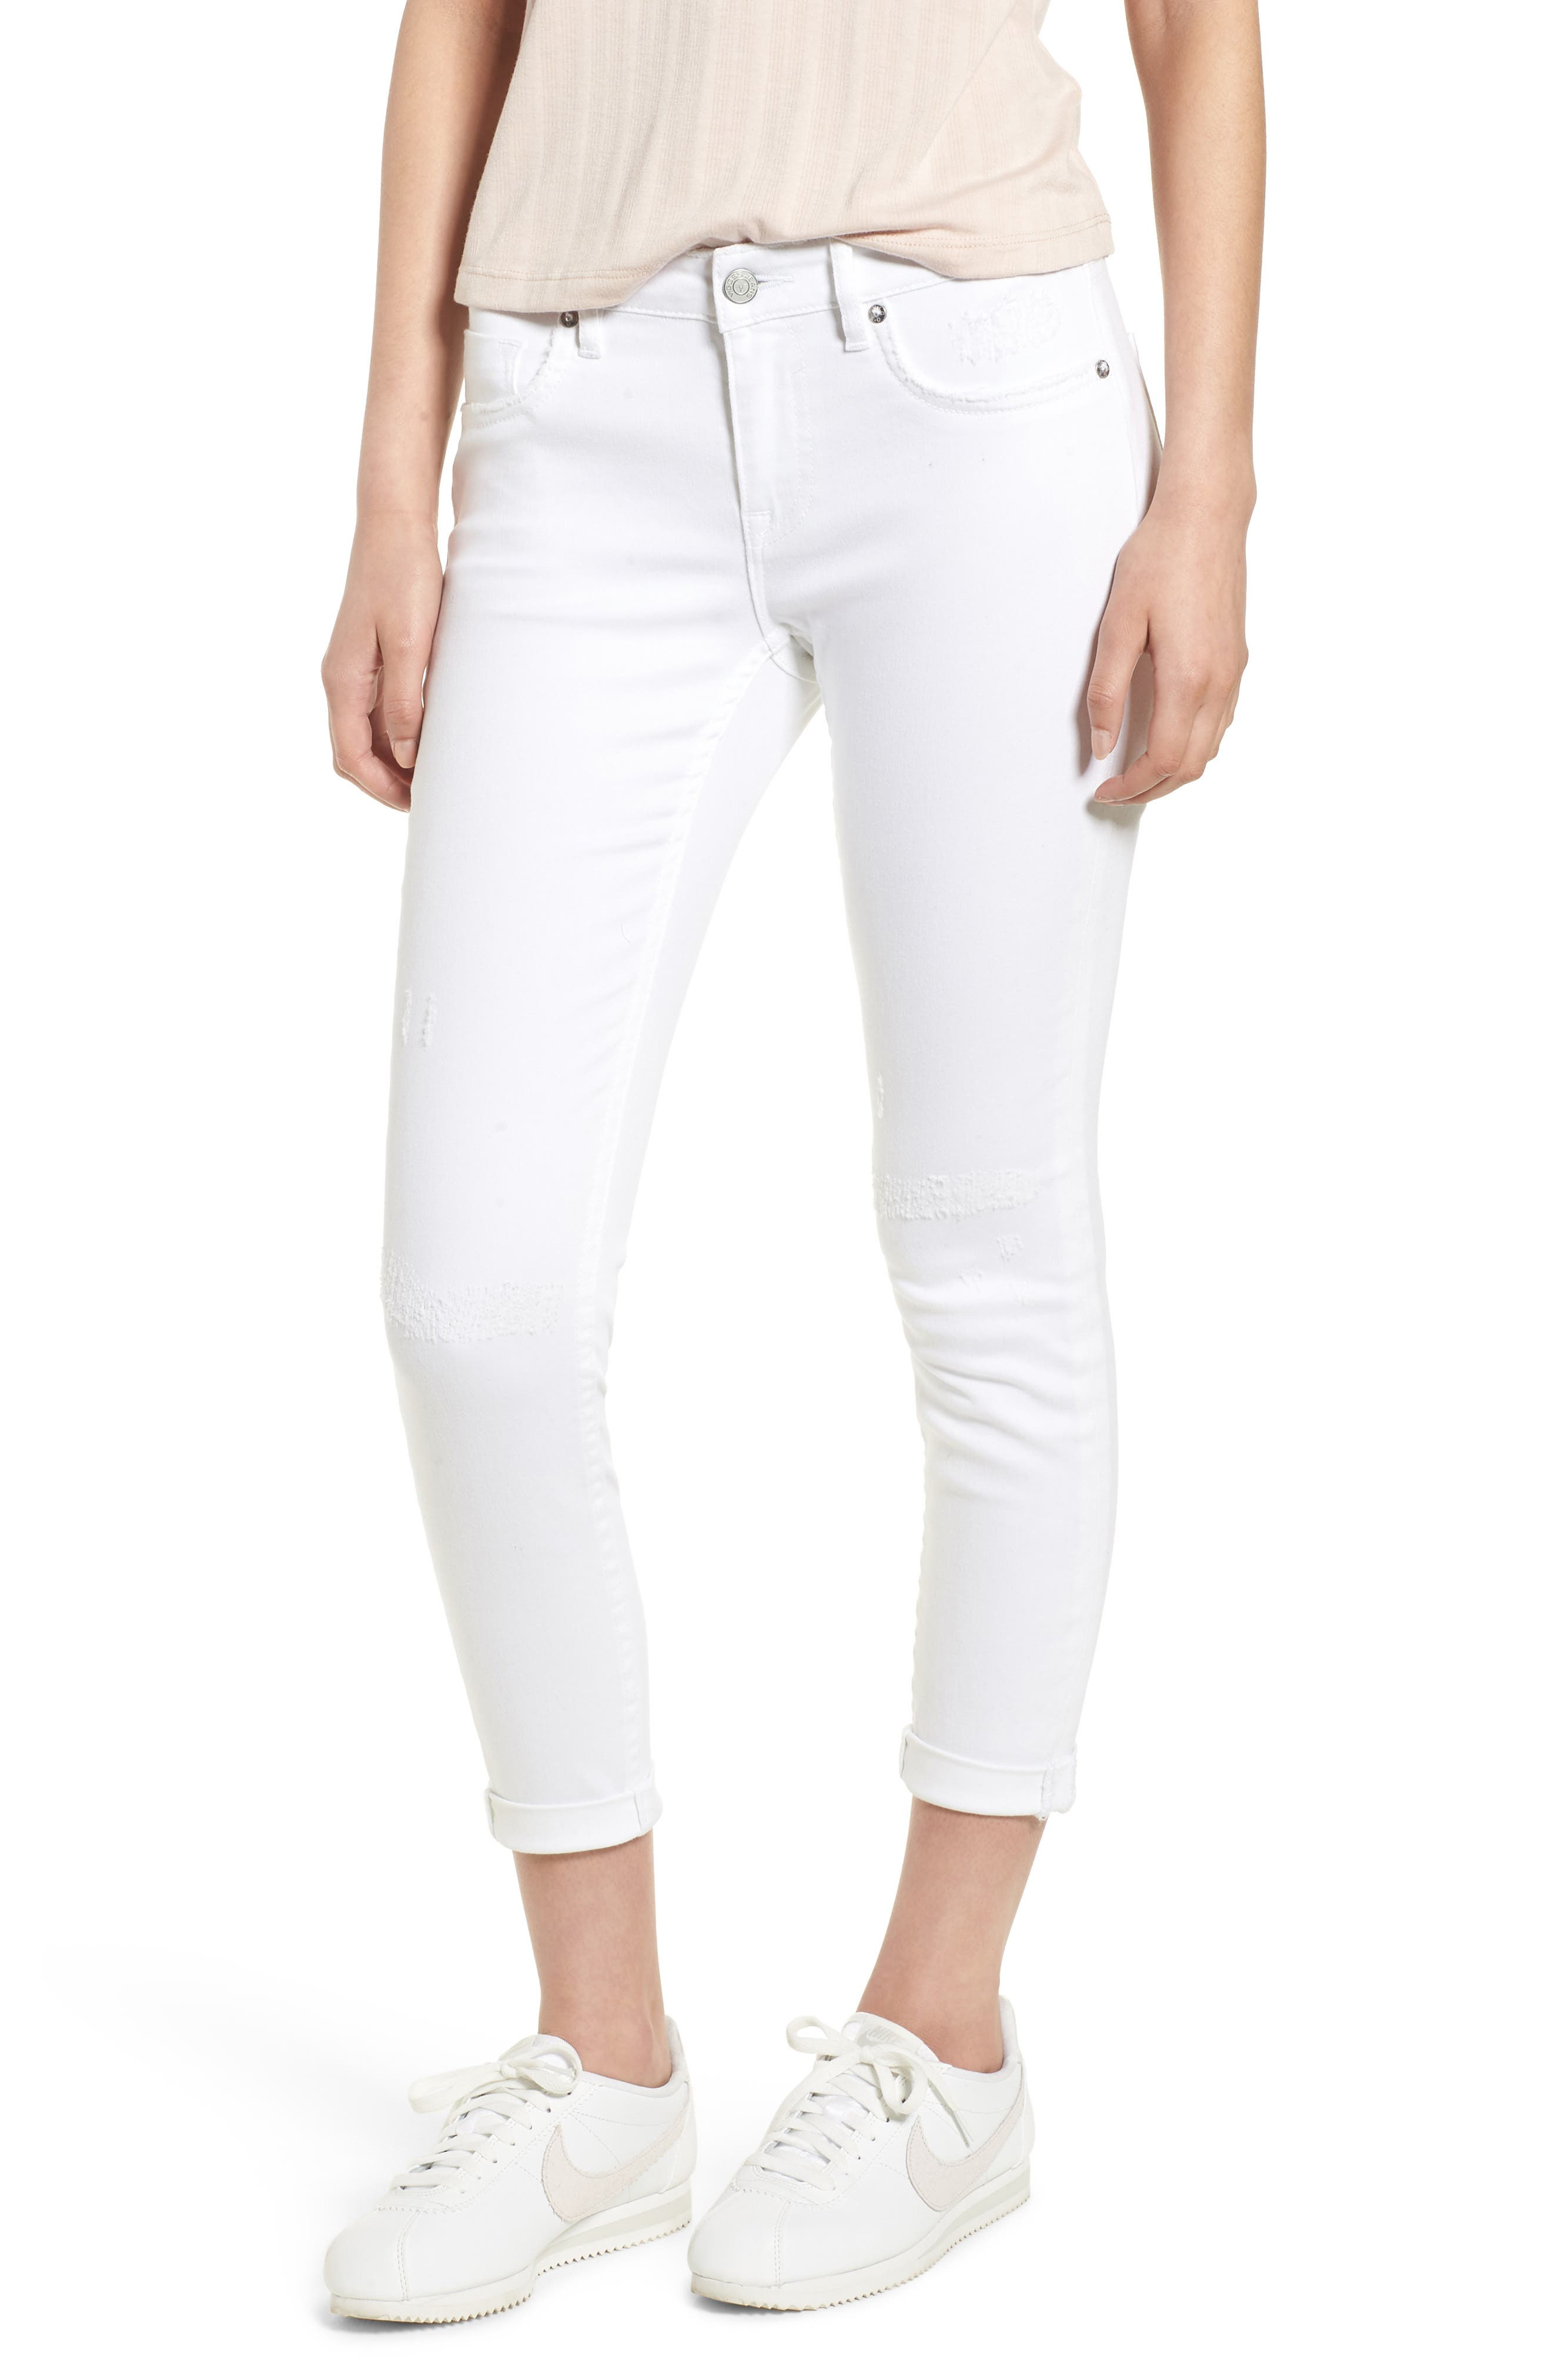 Thompson Tomboy Distressed Cuffed Crop Skinny Jeans,                         Main,                         color,